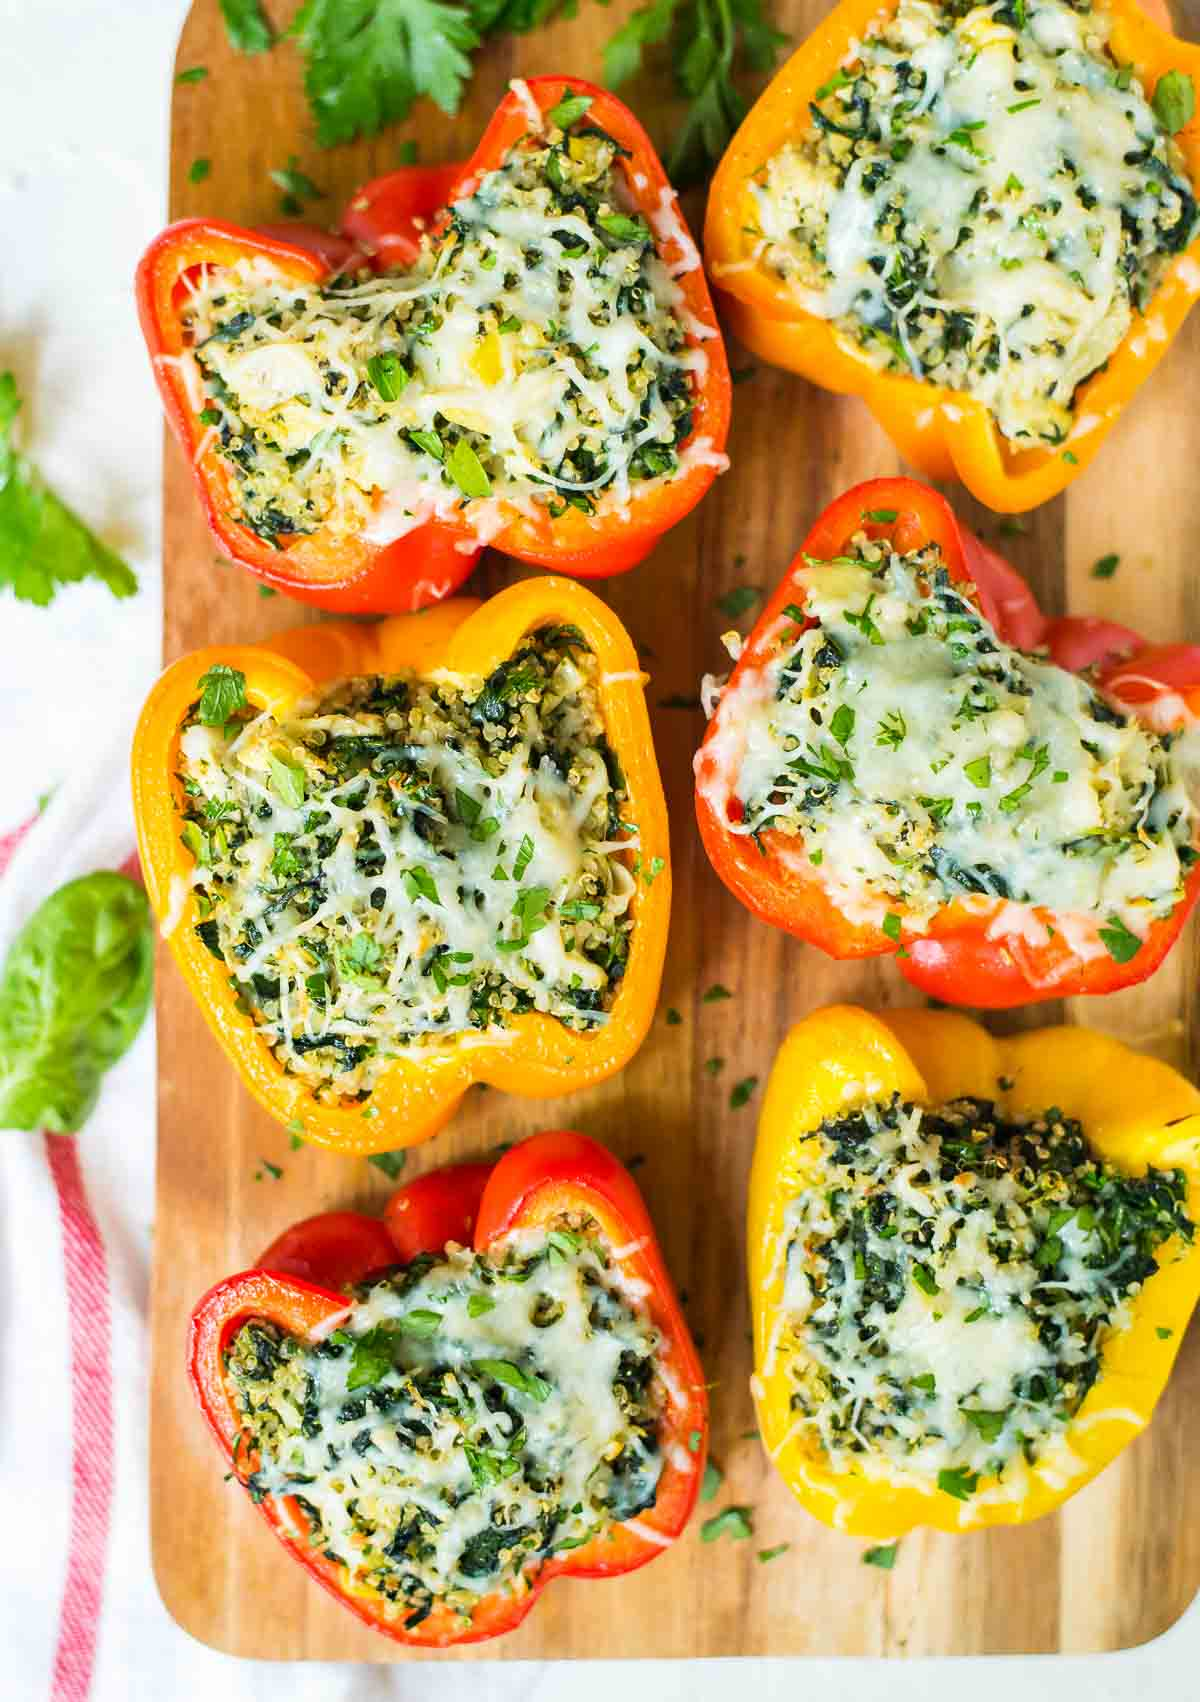 Cheesy Spinach Artichoke Quinoa Stuffed Bell Peppers – Everyone's favorite dip, turned into a quick and healthy meal! @wellplated